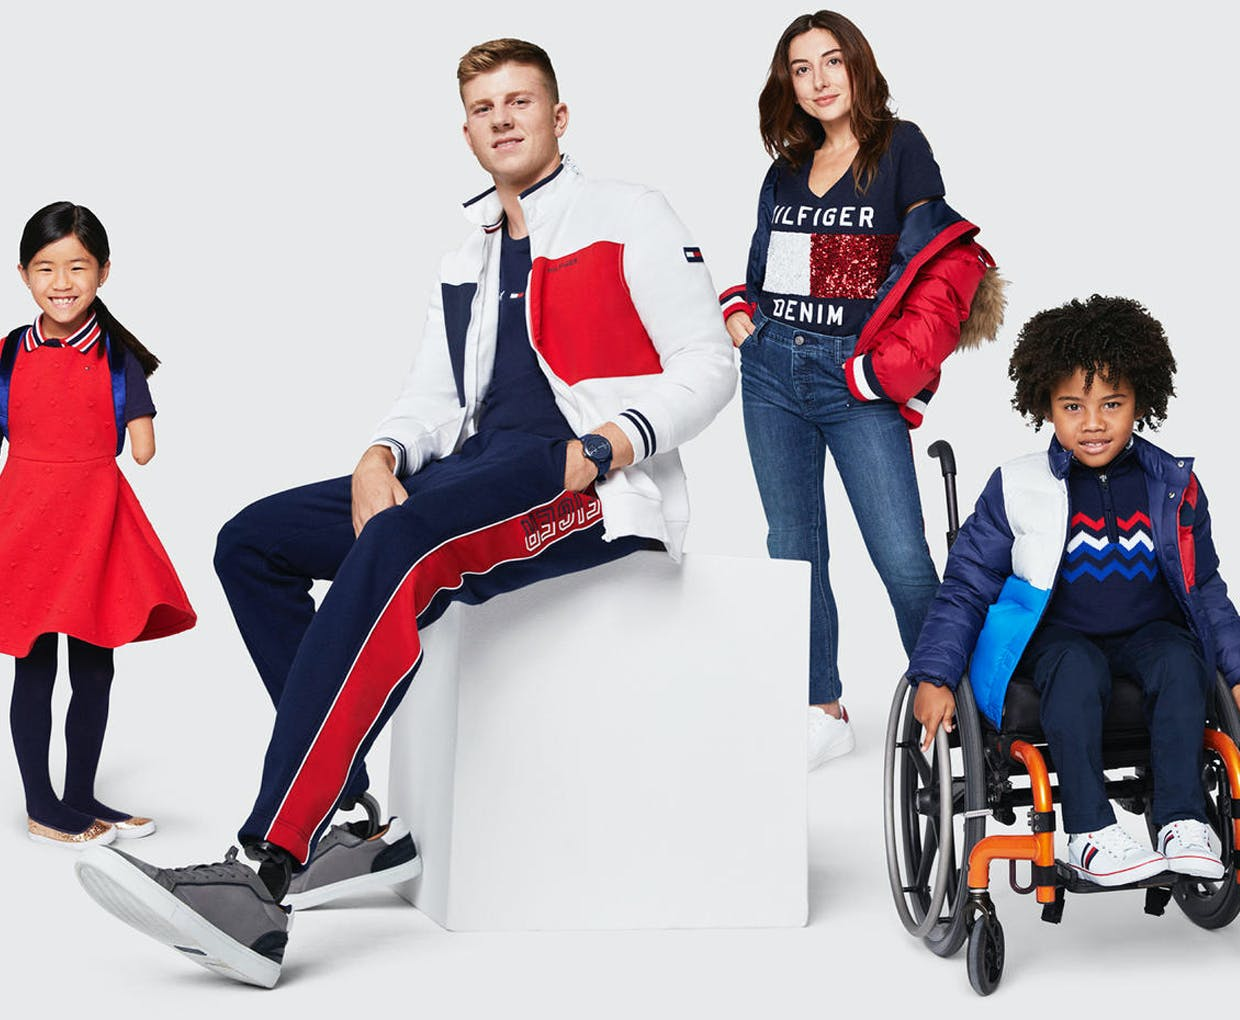 official site uk cheap sale performance sportswear What brands are doing to be more inclusive for people with ...